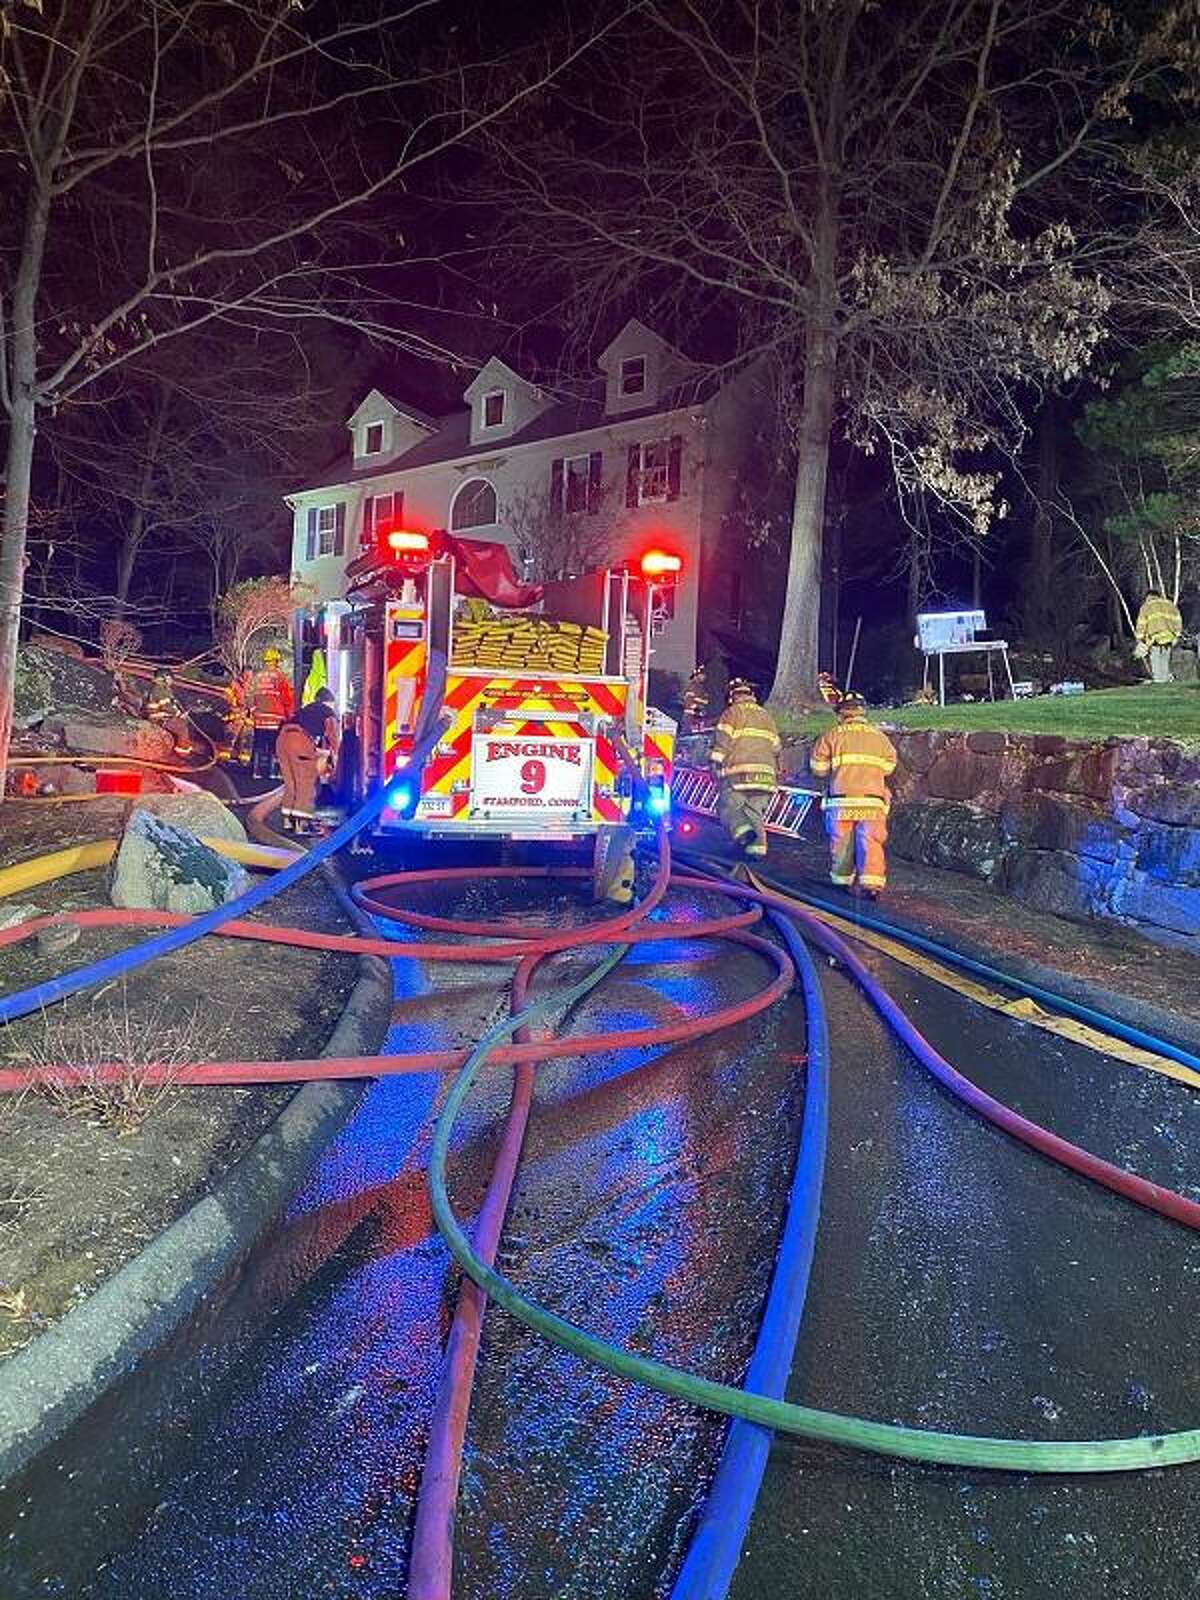 Crews at the scene of a fire in Stamford, Conn., on Friday, Dec. 4, 2020.